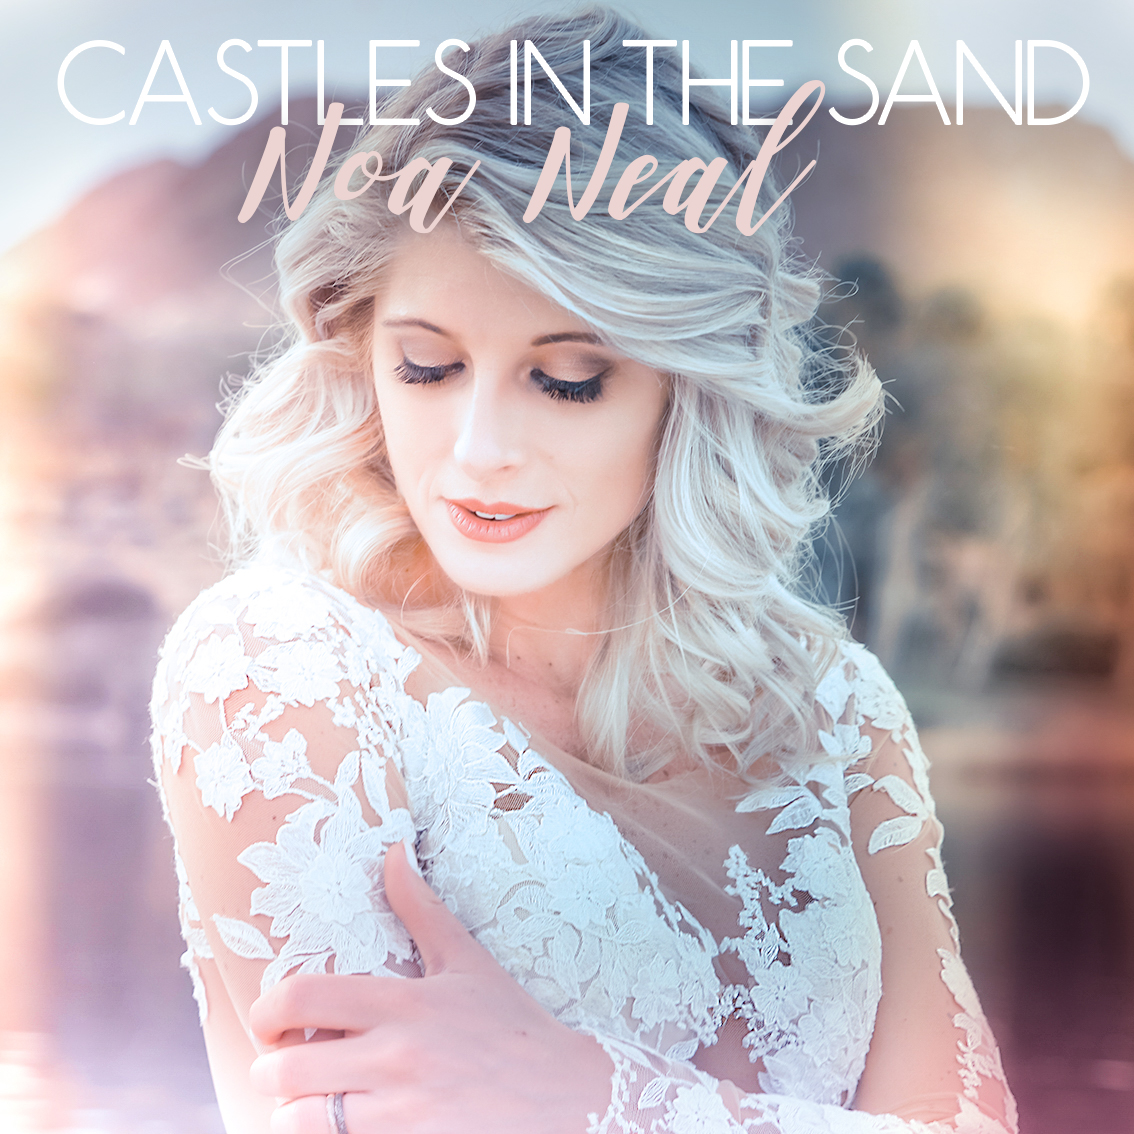 Noa Neal Castles in the Sand